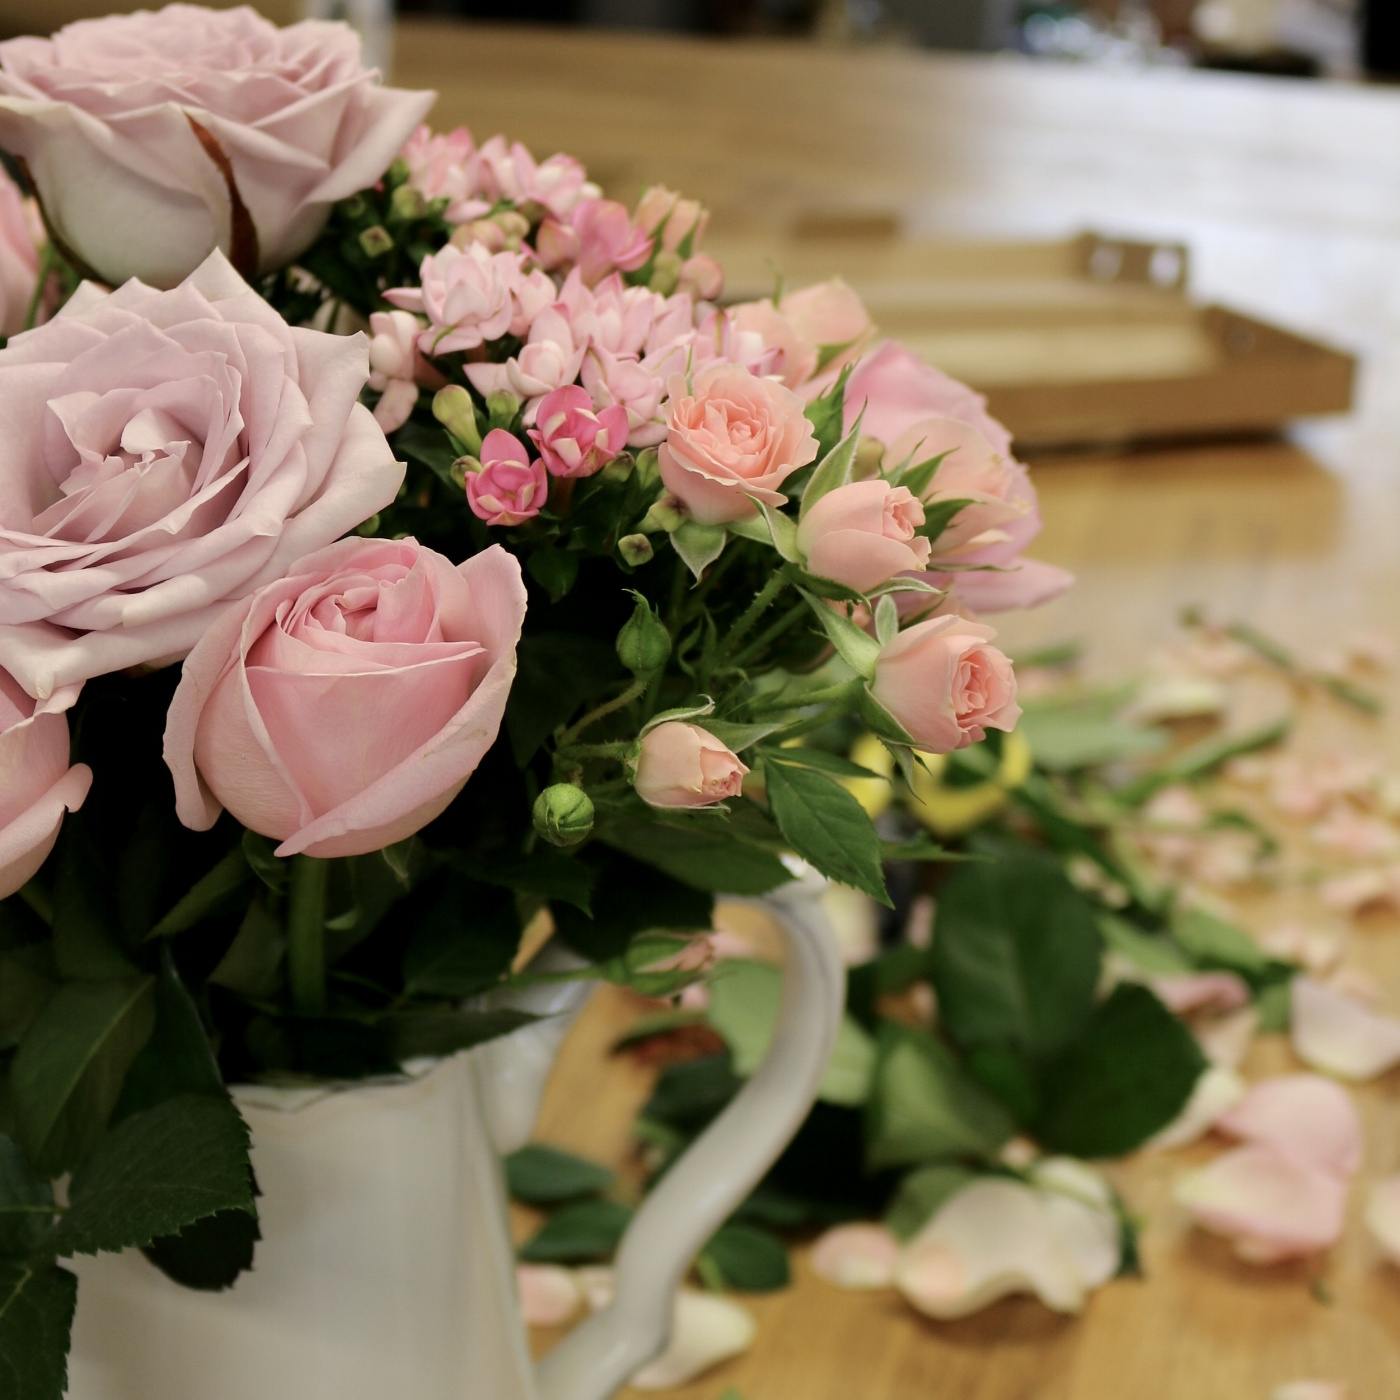 Creating beautiful bouquets from letterbox flowers